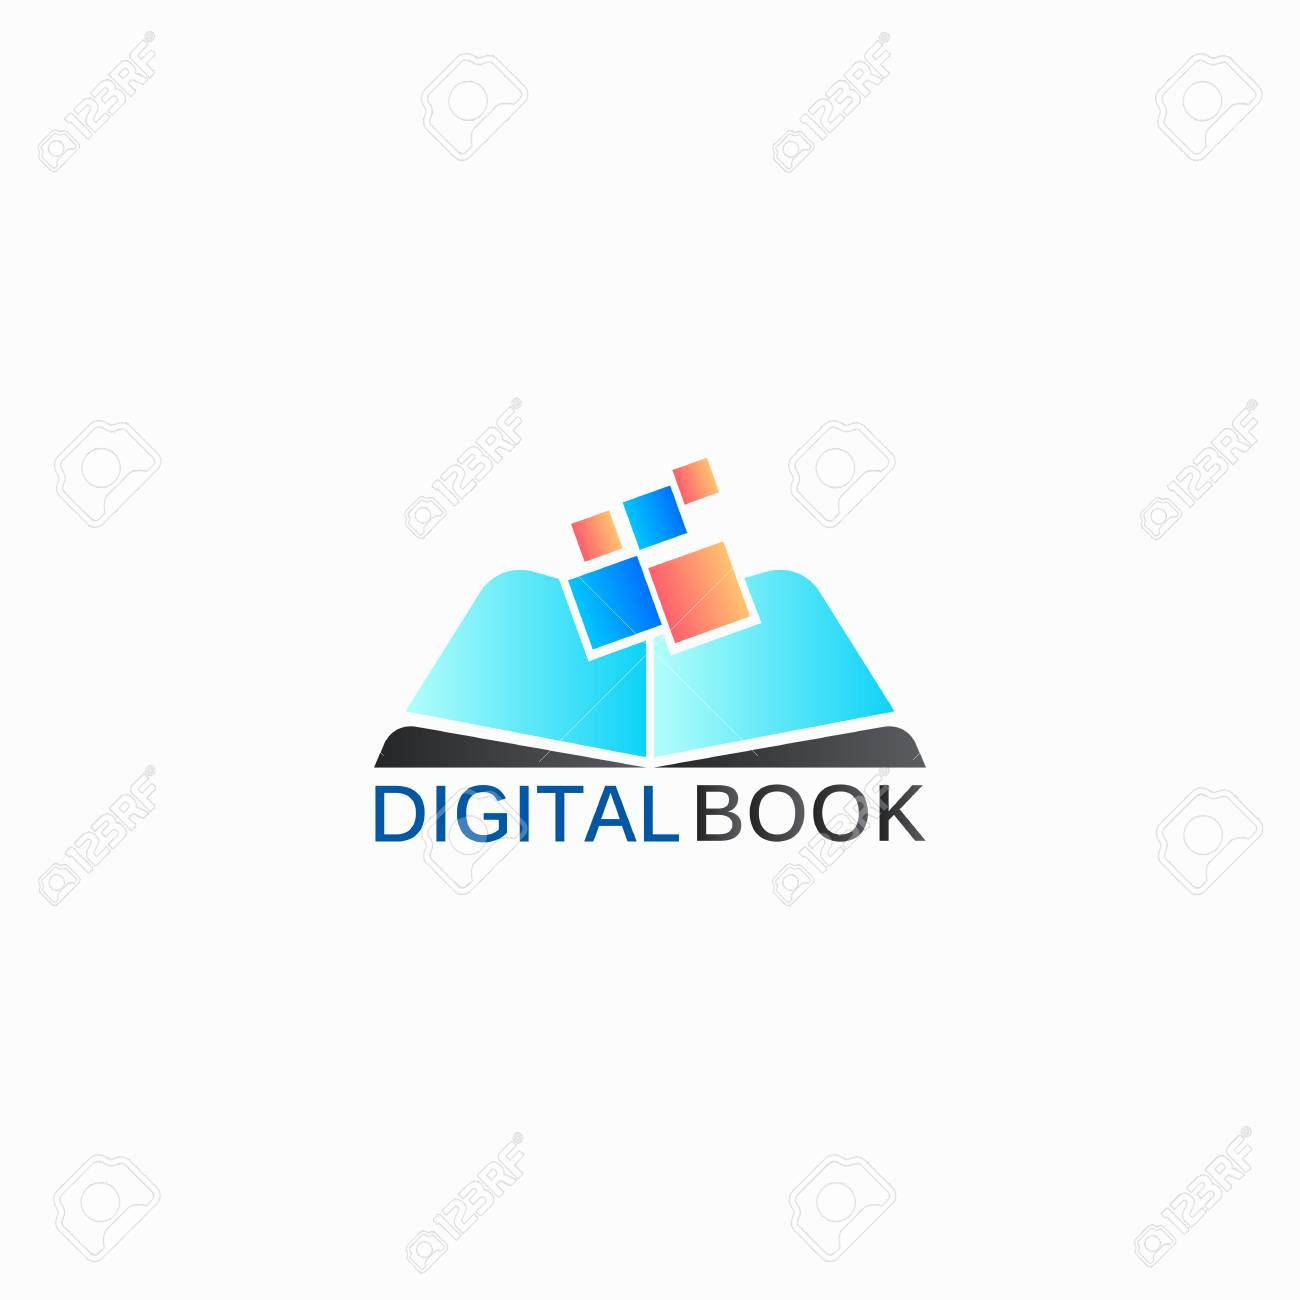 Digital Book Vector Logo